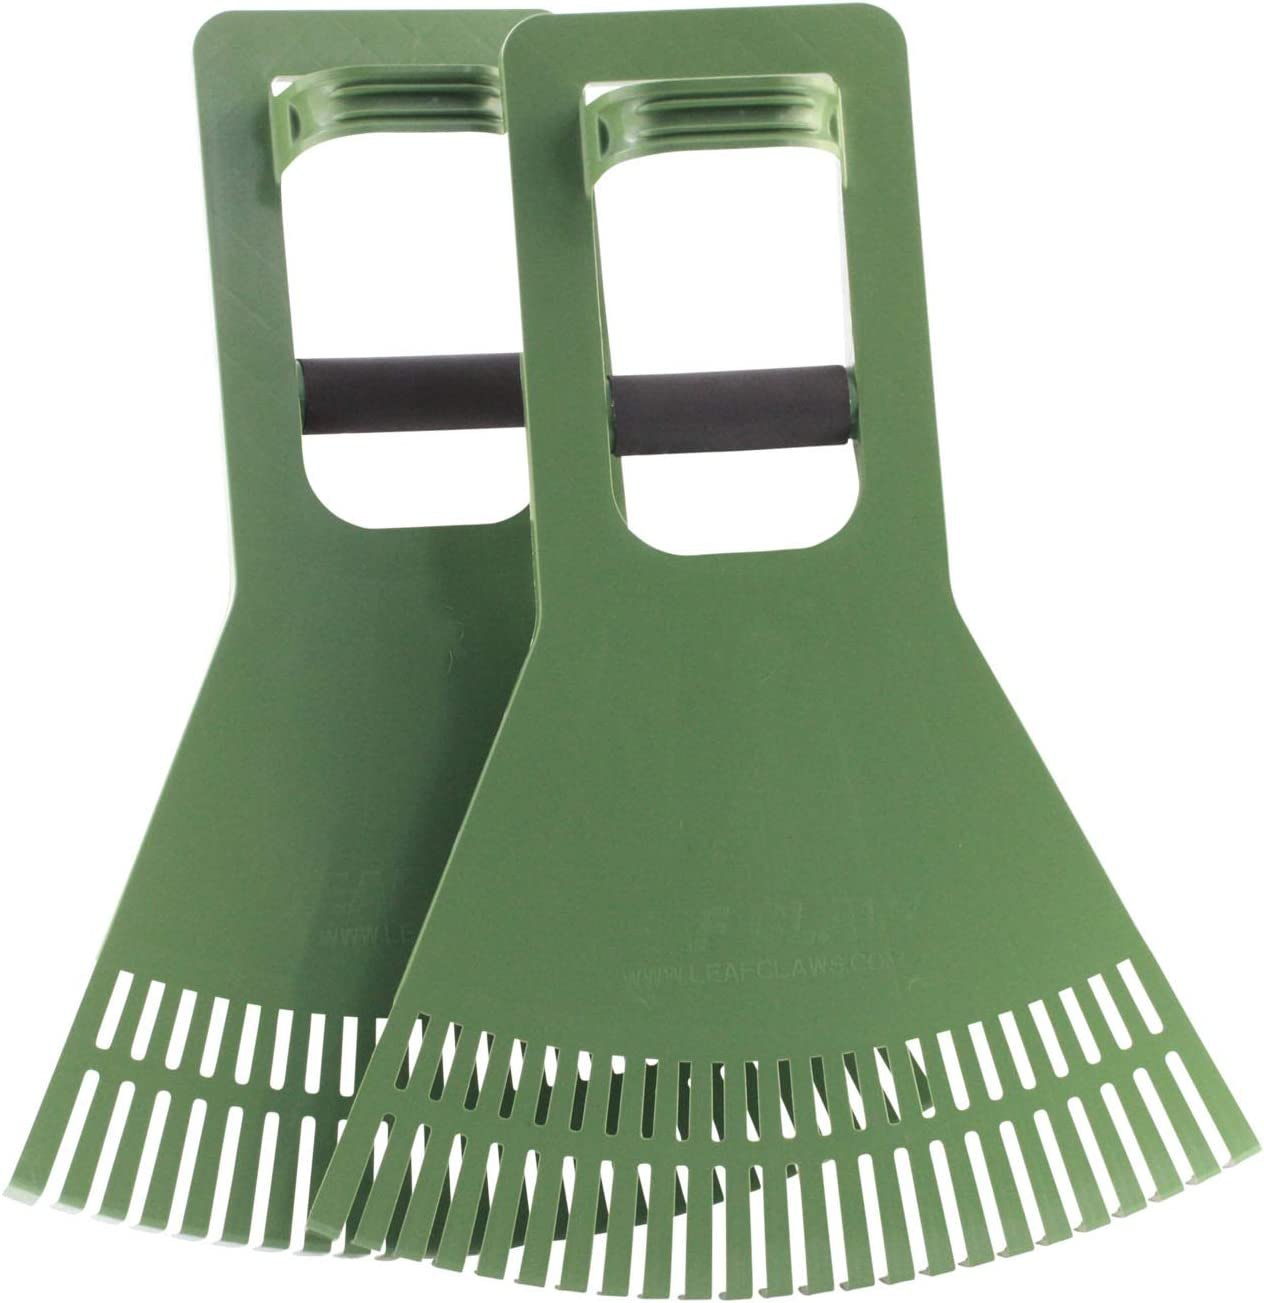 Vertex Premium Quality Pick-Up Scoops with Foam Grip Wrap   Long Reach Leaf Claw for Grass, Lawn, Garden, Twigs, Pine Needle or Debris   Set of 2 Ergonomic Hand Rake Tool   Made in USA Model P922